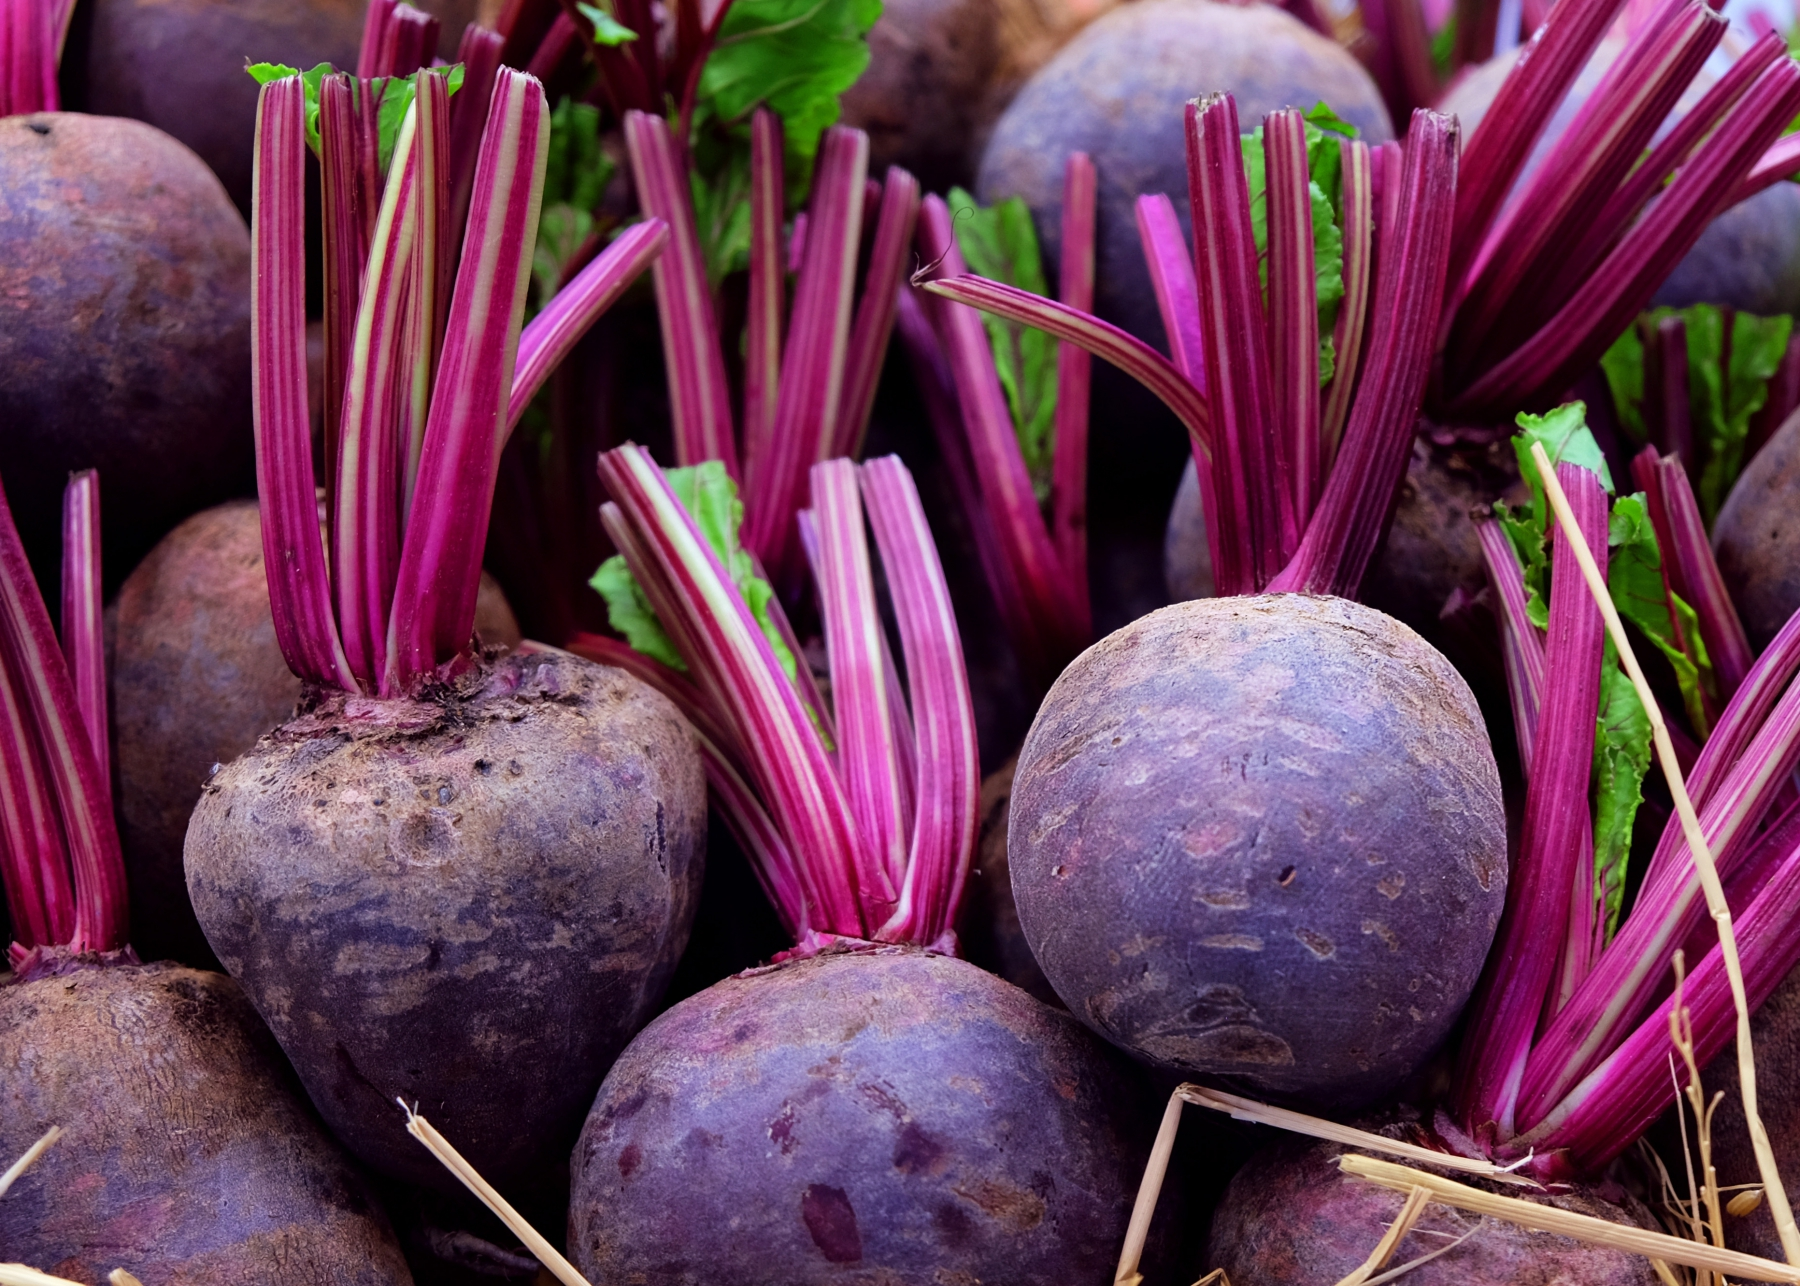 Beets Planting Growing And Harvesting Beets The Old